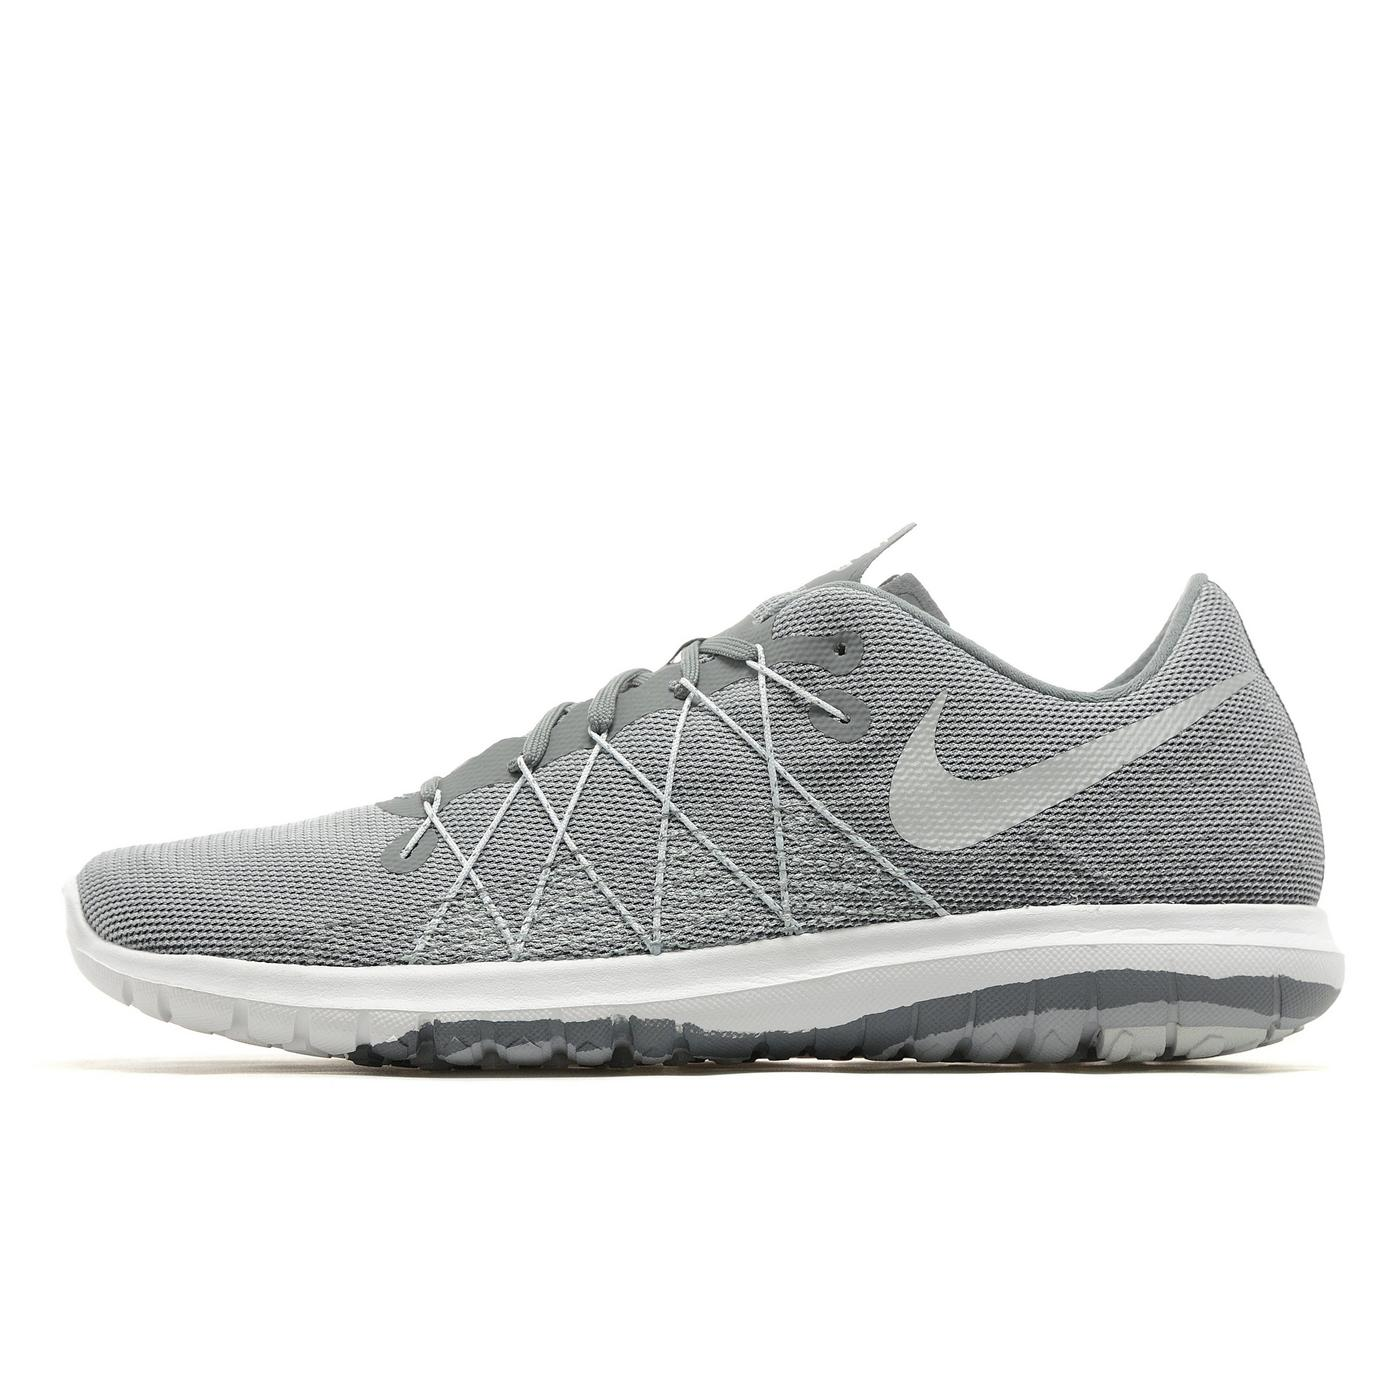 JDSPORTS EXCLUSIVE _ _ 85€fury_grey